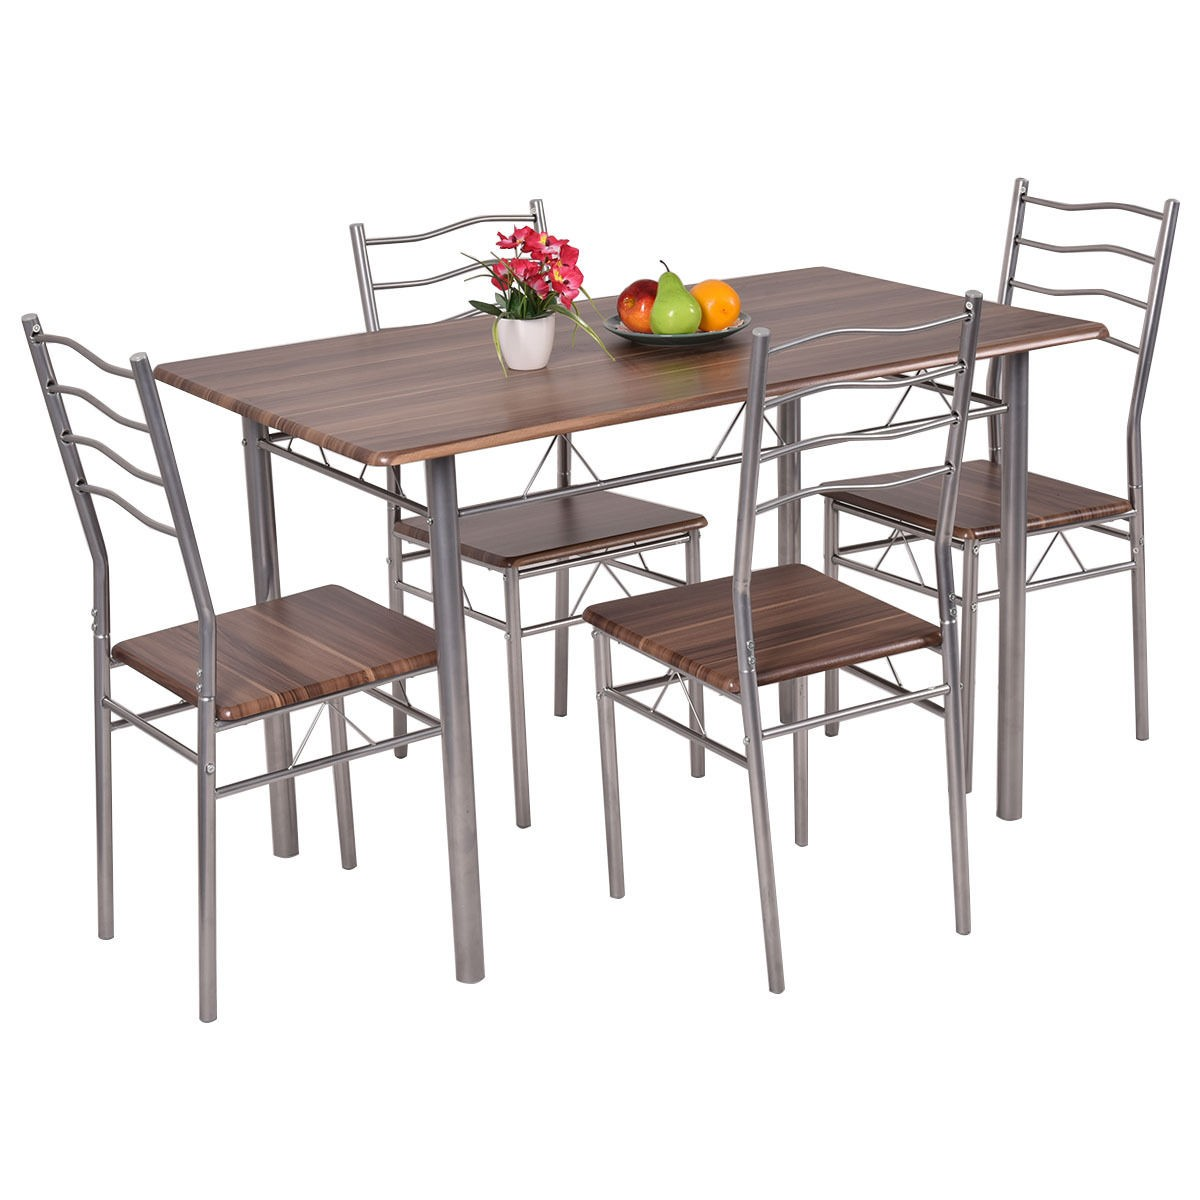 5 piece dining set wood metal table and 4 chairs kitchen Kitchen table and chairs